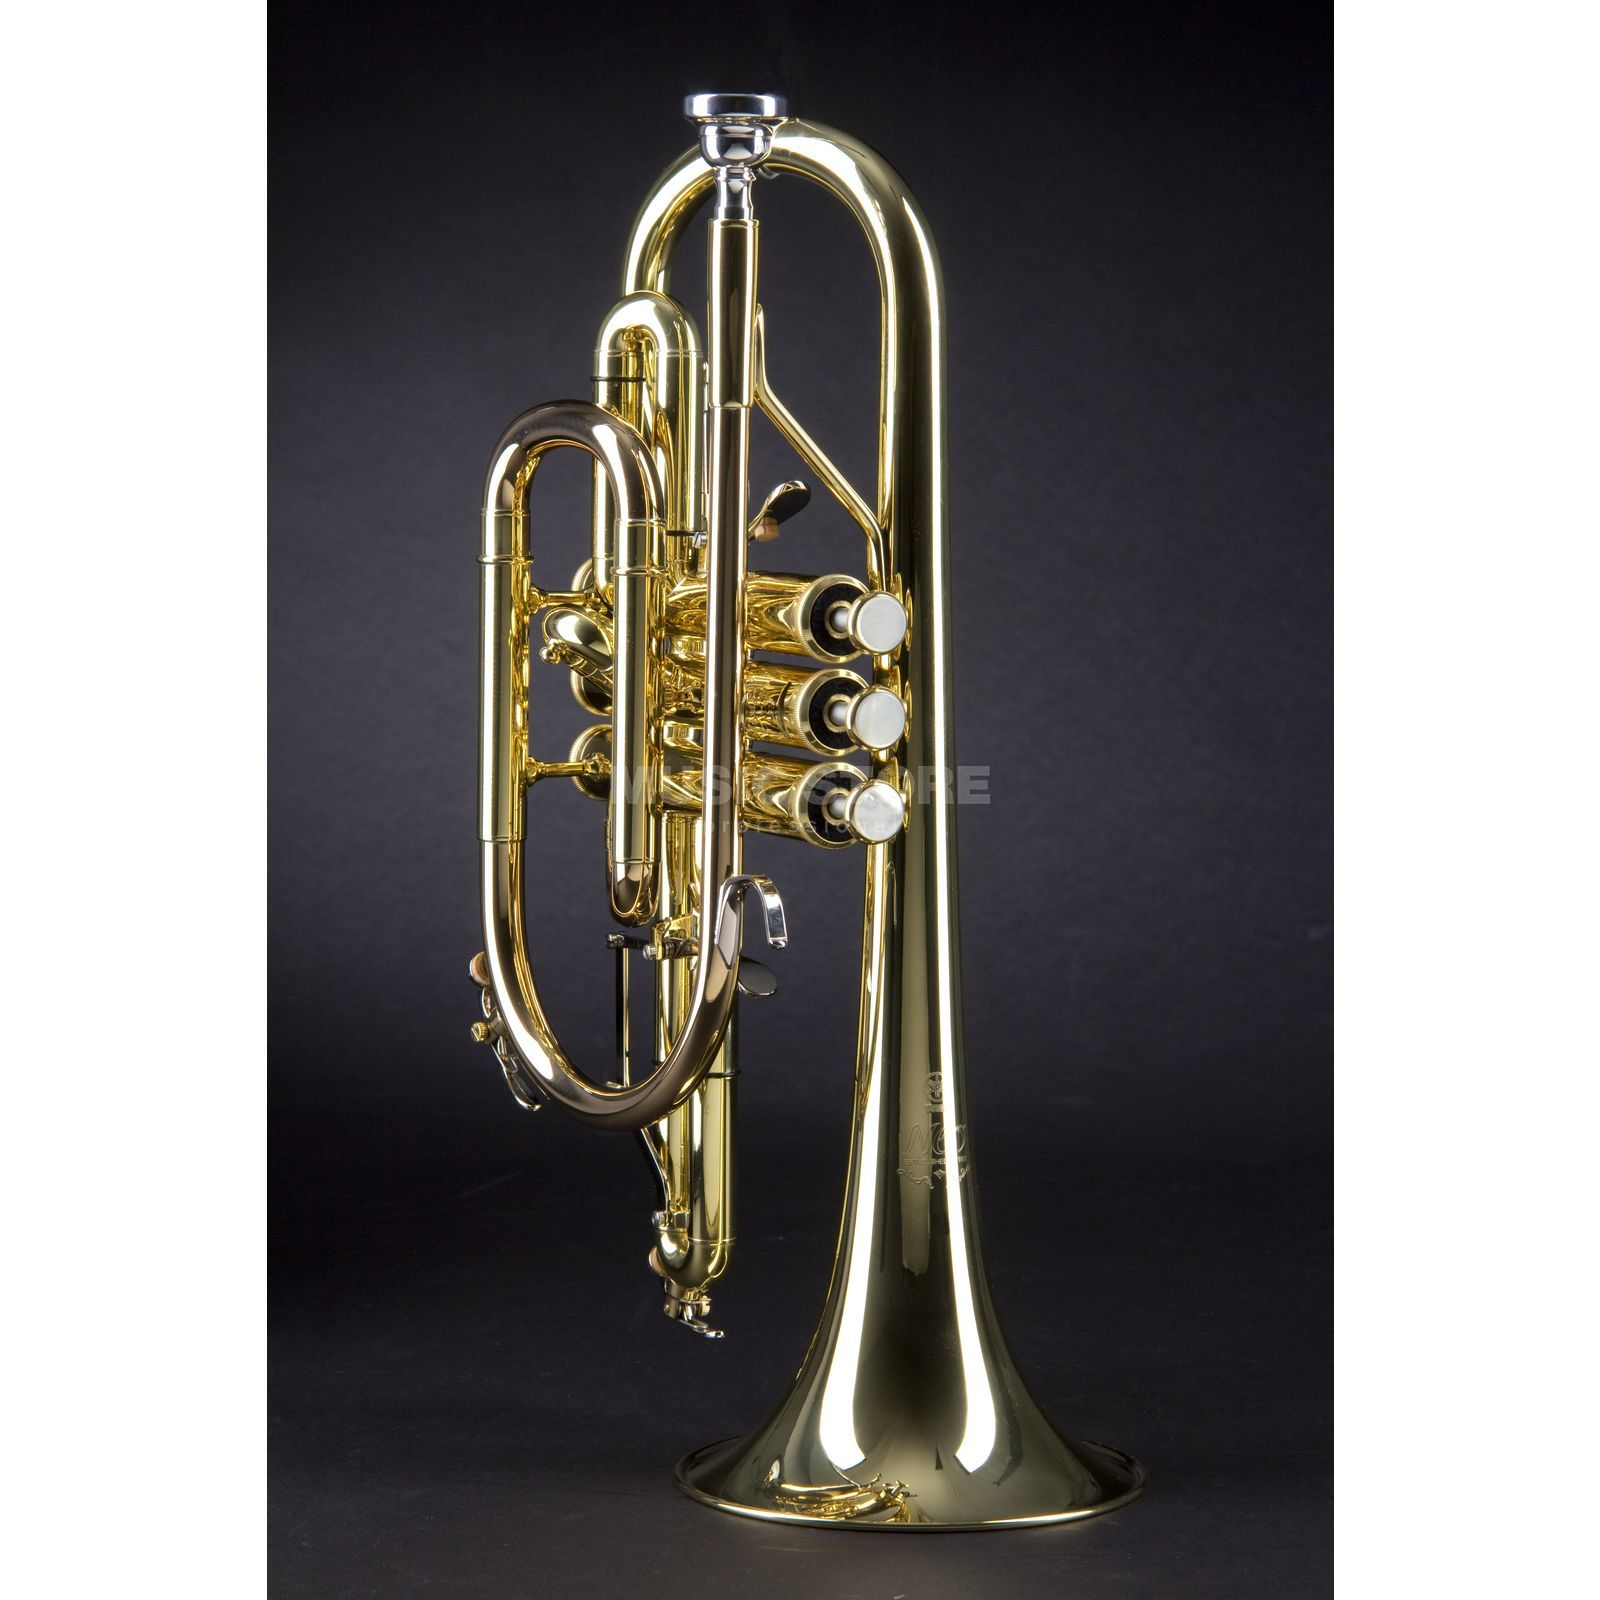 Yamaha YCR-8335 02 Bb-Cornet NEO Series, Gold Lacquer Product Image